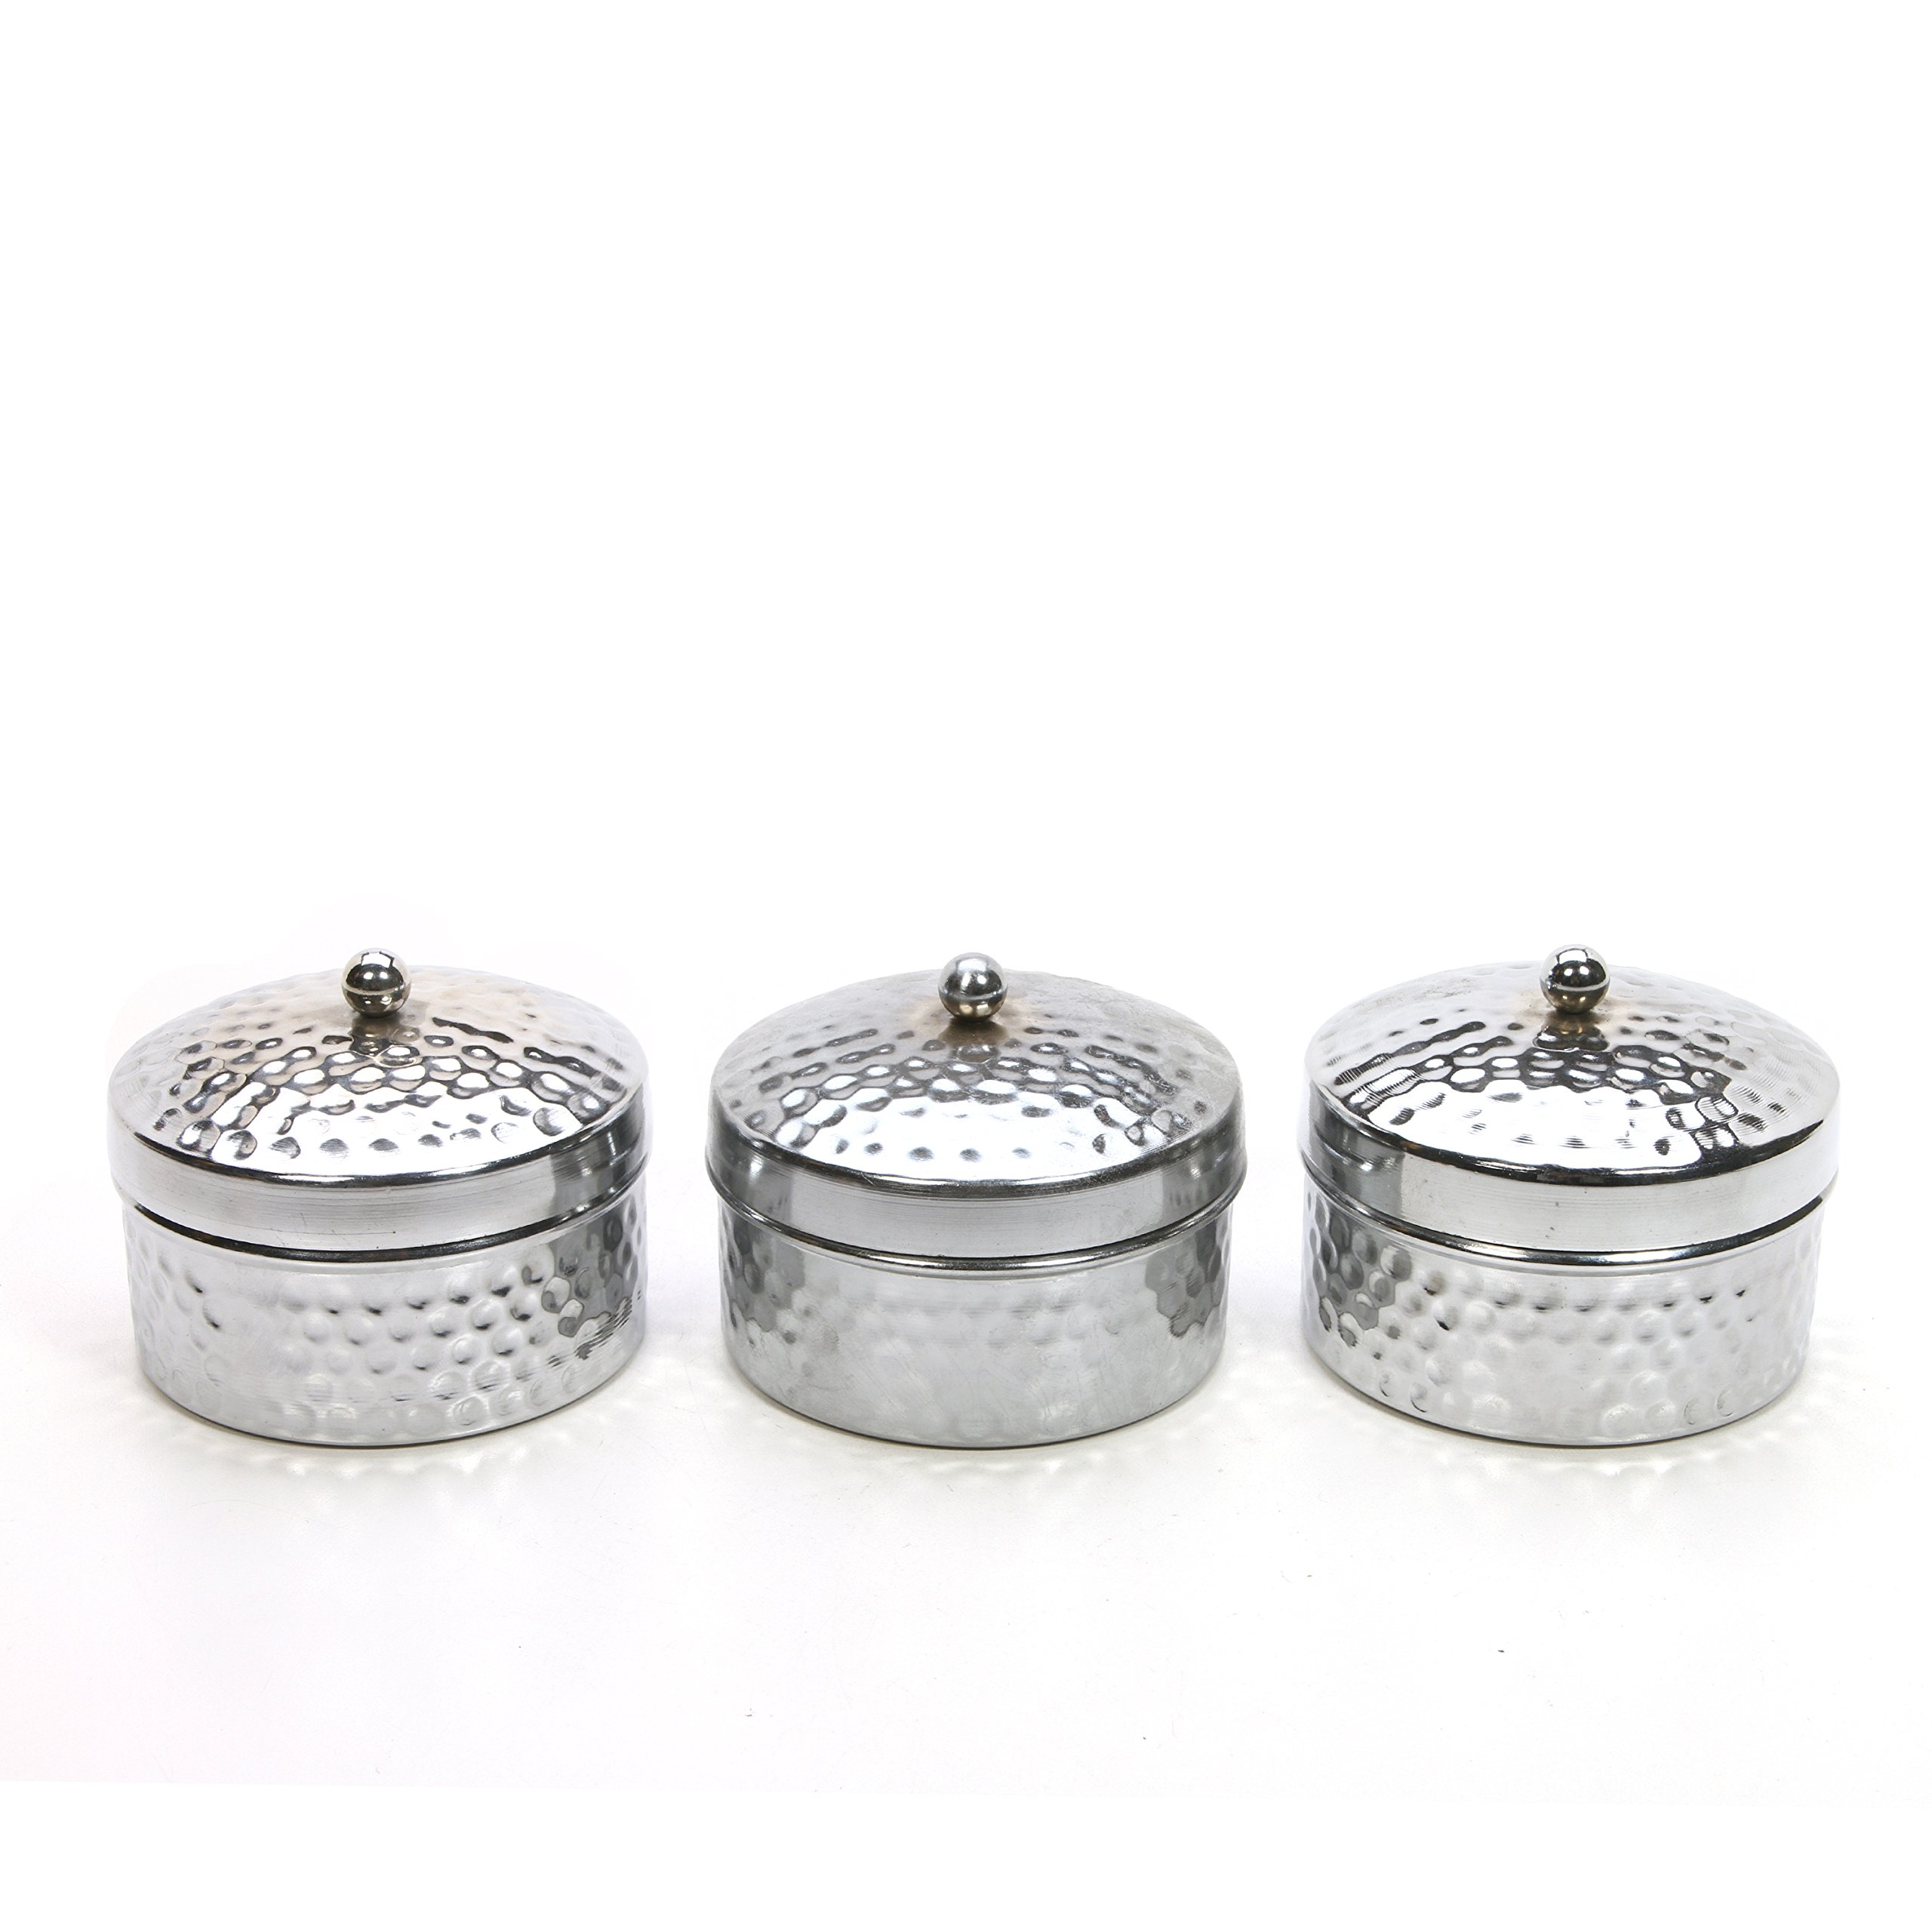 Hosley Set of 3 Silver Iron Hammered Wax Filled Candle With Lid- Lavender. Ideal Gift for Wedding, Special Events, Aromatherapy, Spa, Reiki, Meditation, Bathroom Setting, Everyday Use. P1